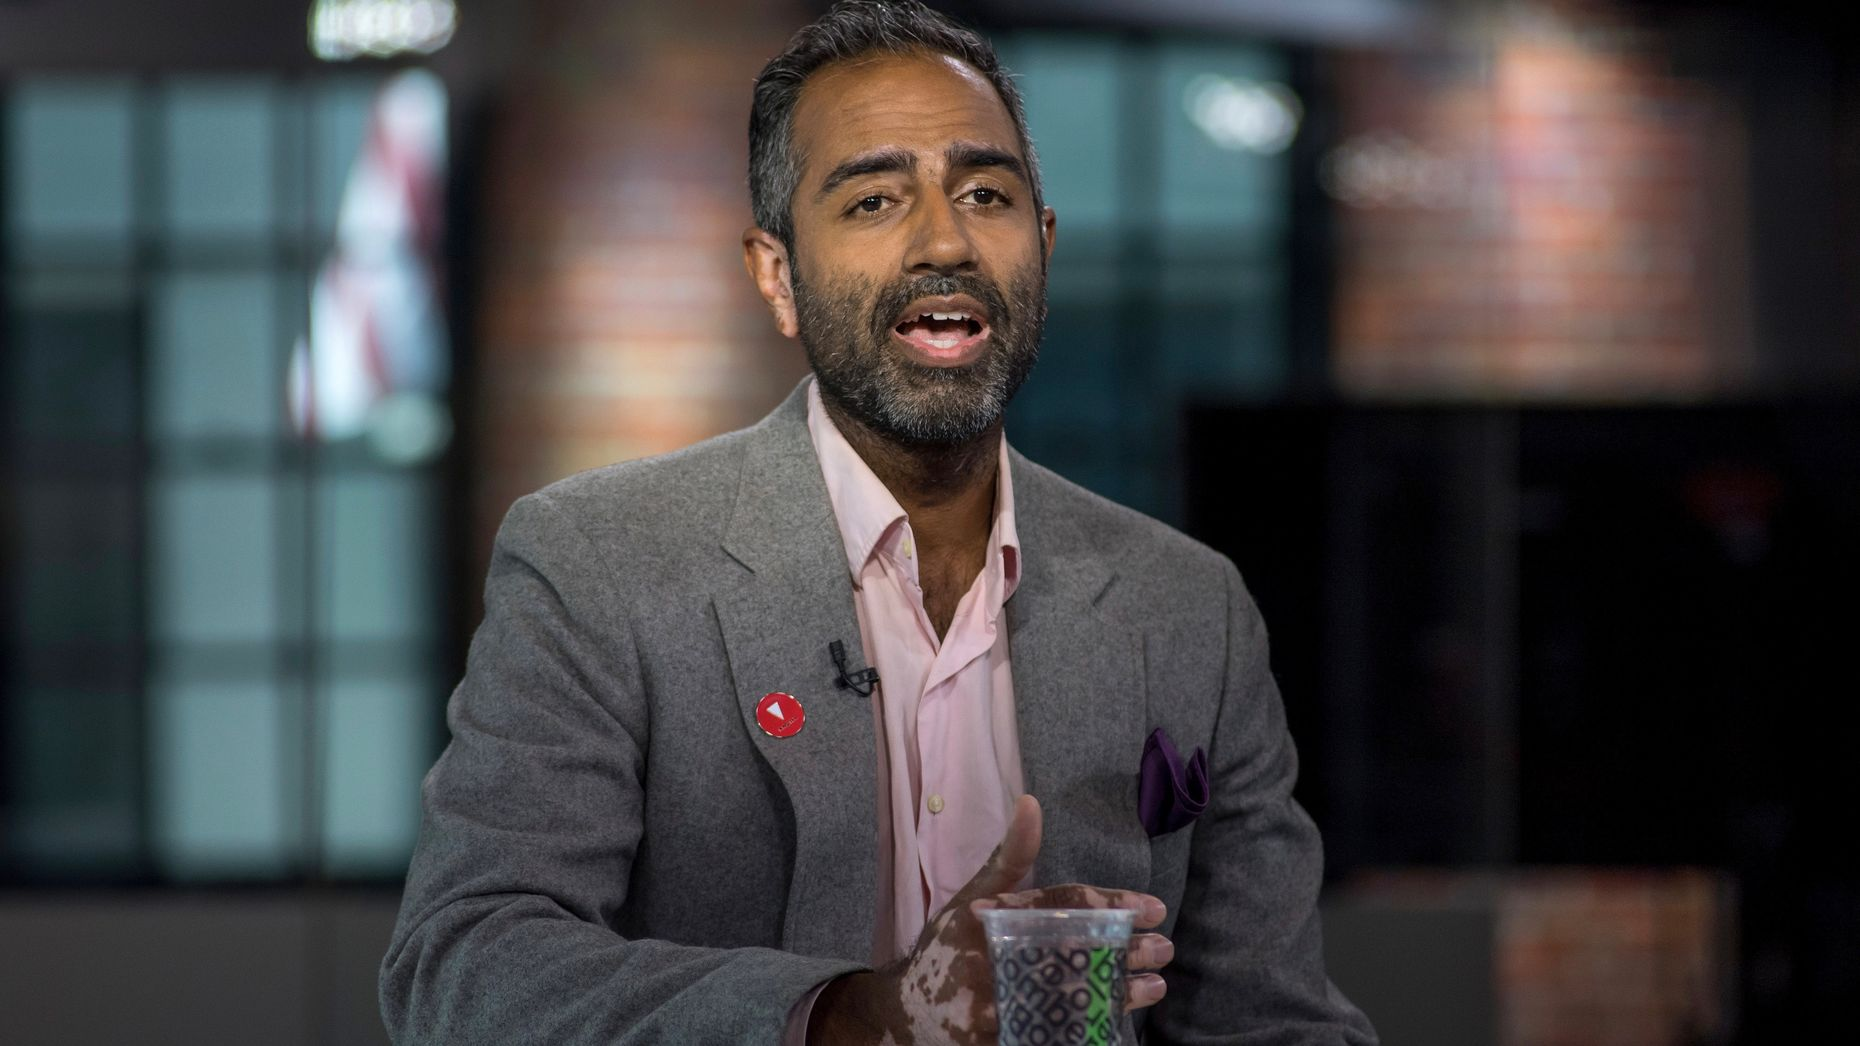 Knotel CEO Amol Sarva. Photo by Bloomberg.